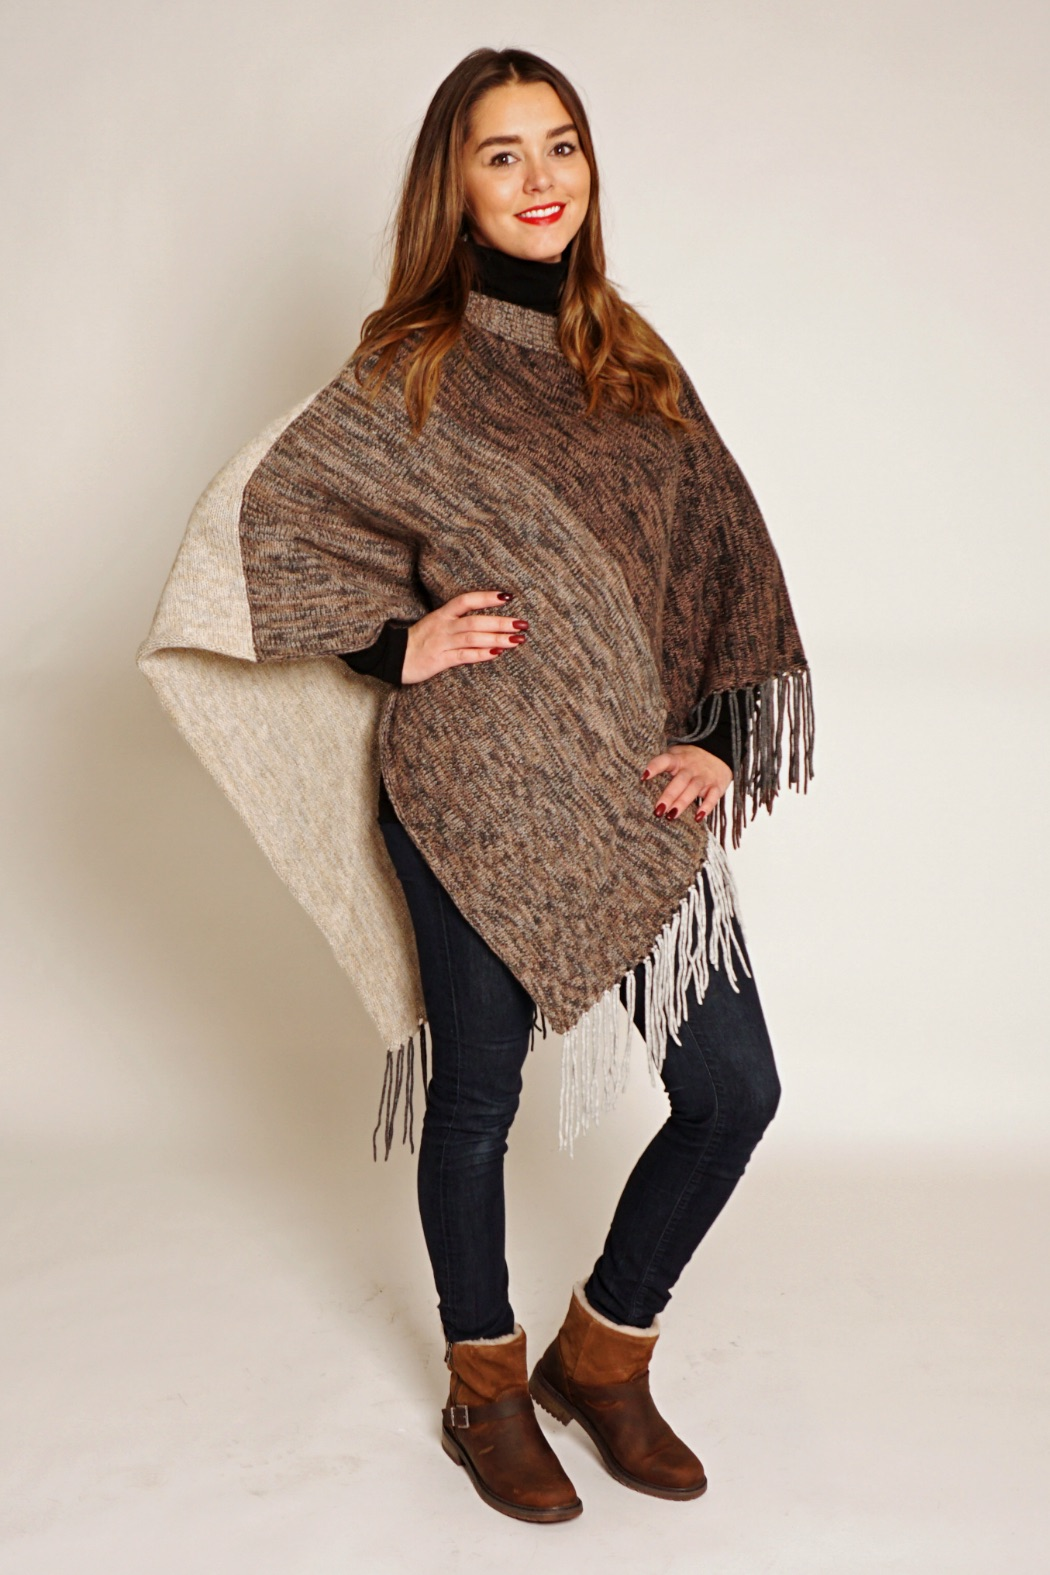 Here are just a few reasons why we think it will be a great addition to your wardrobe this season:  It's fun and trendy. The poncho or cape will add a modern touch to your wardrobe.  They are slimming and camouflage perceived body imperfections .  A poncho is super comfortable.  Wear it both indoors and outdoors: another advantage of a lightweight poncho is that you can both wear it inside the house as well as outdoors. Not all days are super cold and some days a thicker knit sweater with a poncho will do the trick.